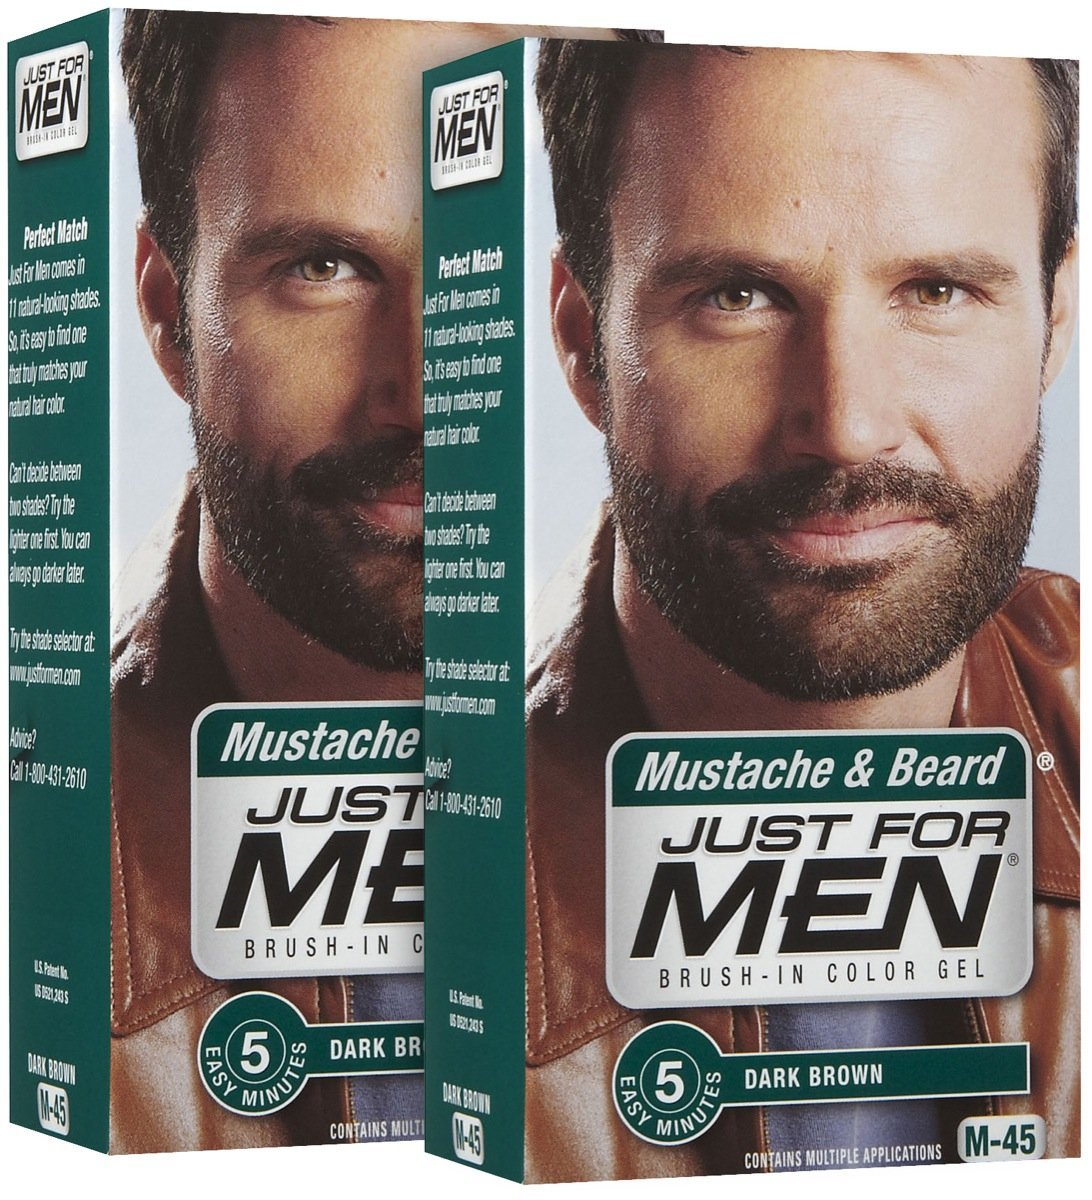 Amazon.com : Just For Men Brush-In Color Mustache & Beard - Dark ...